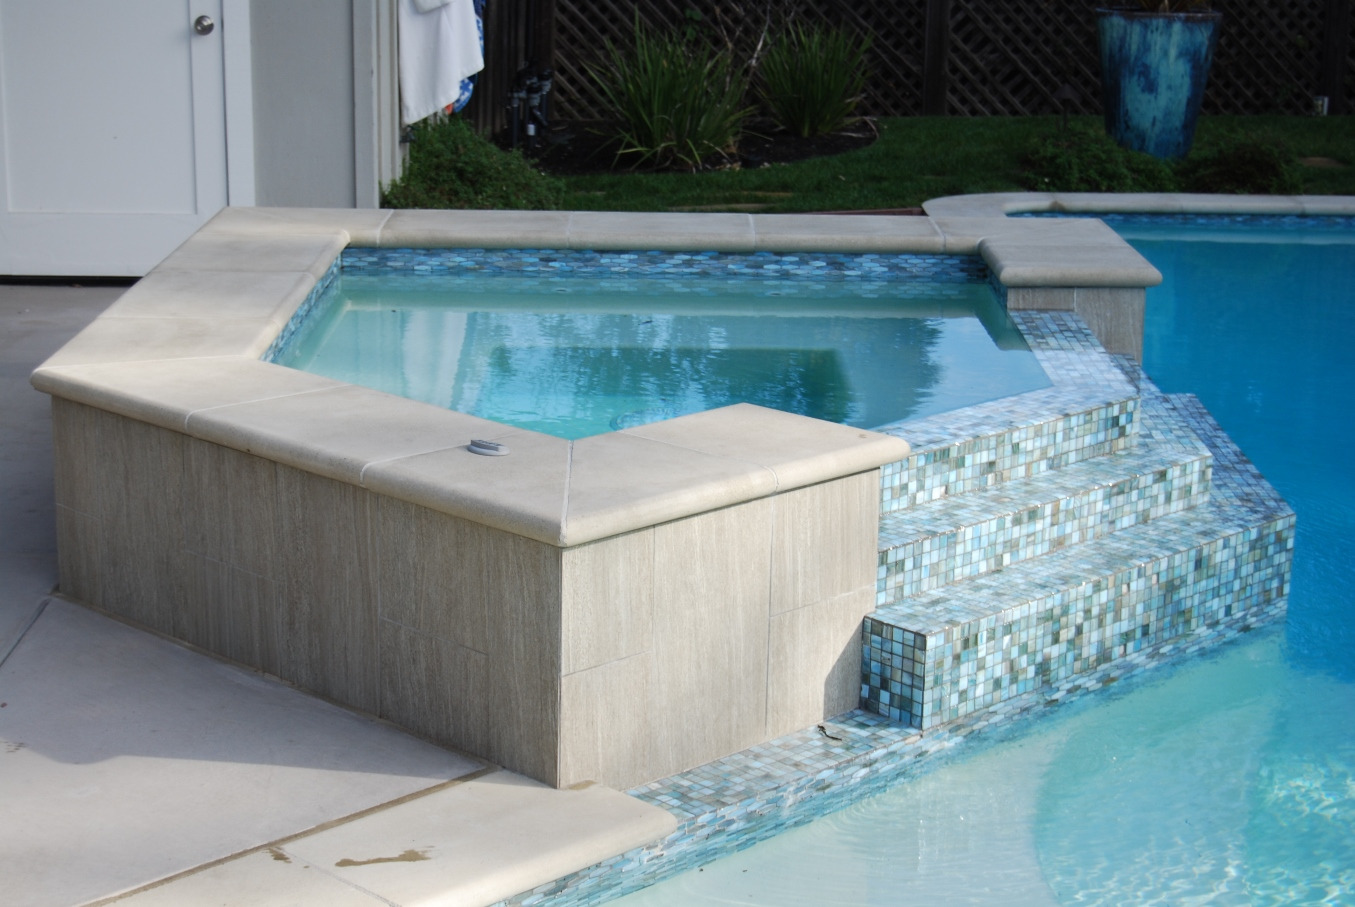 Pool and spa maintenance service San Ramon